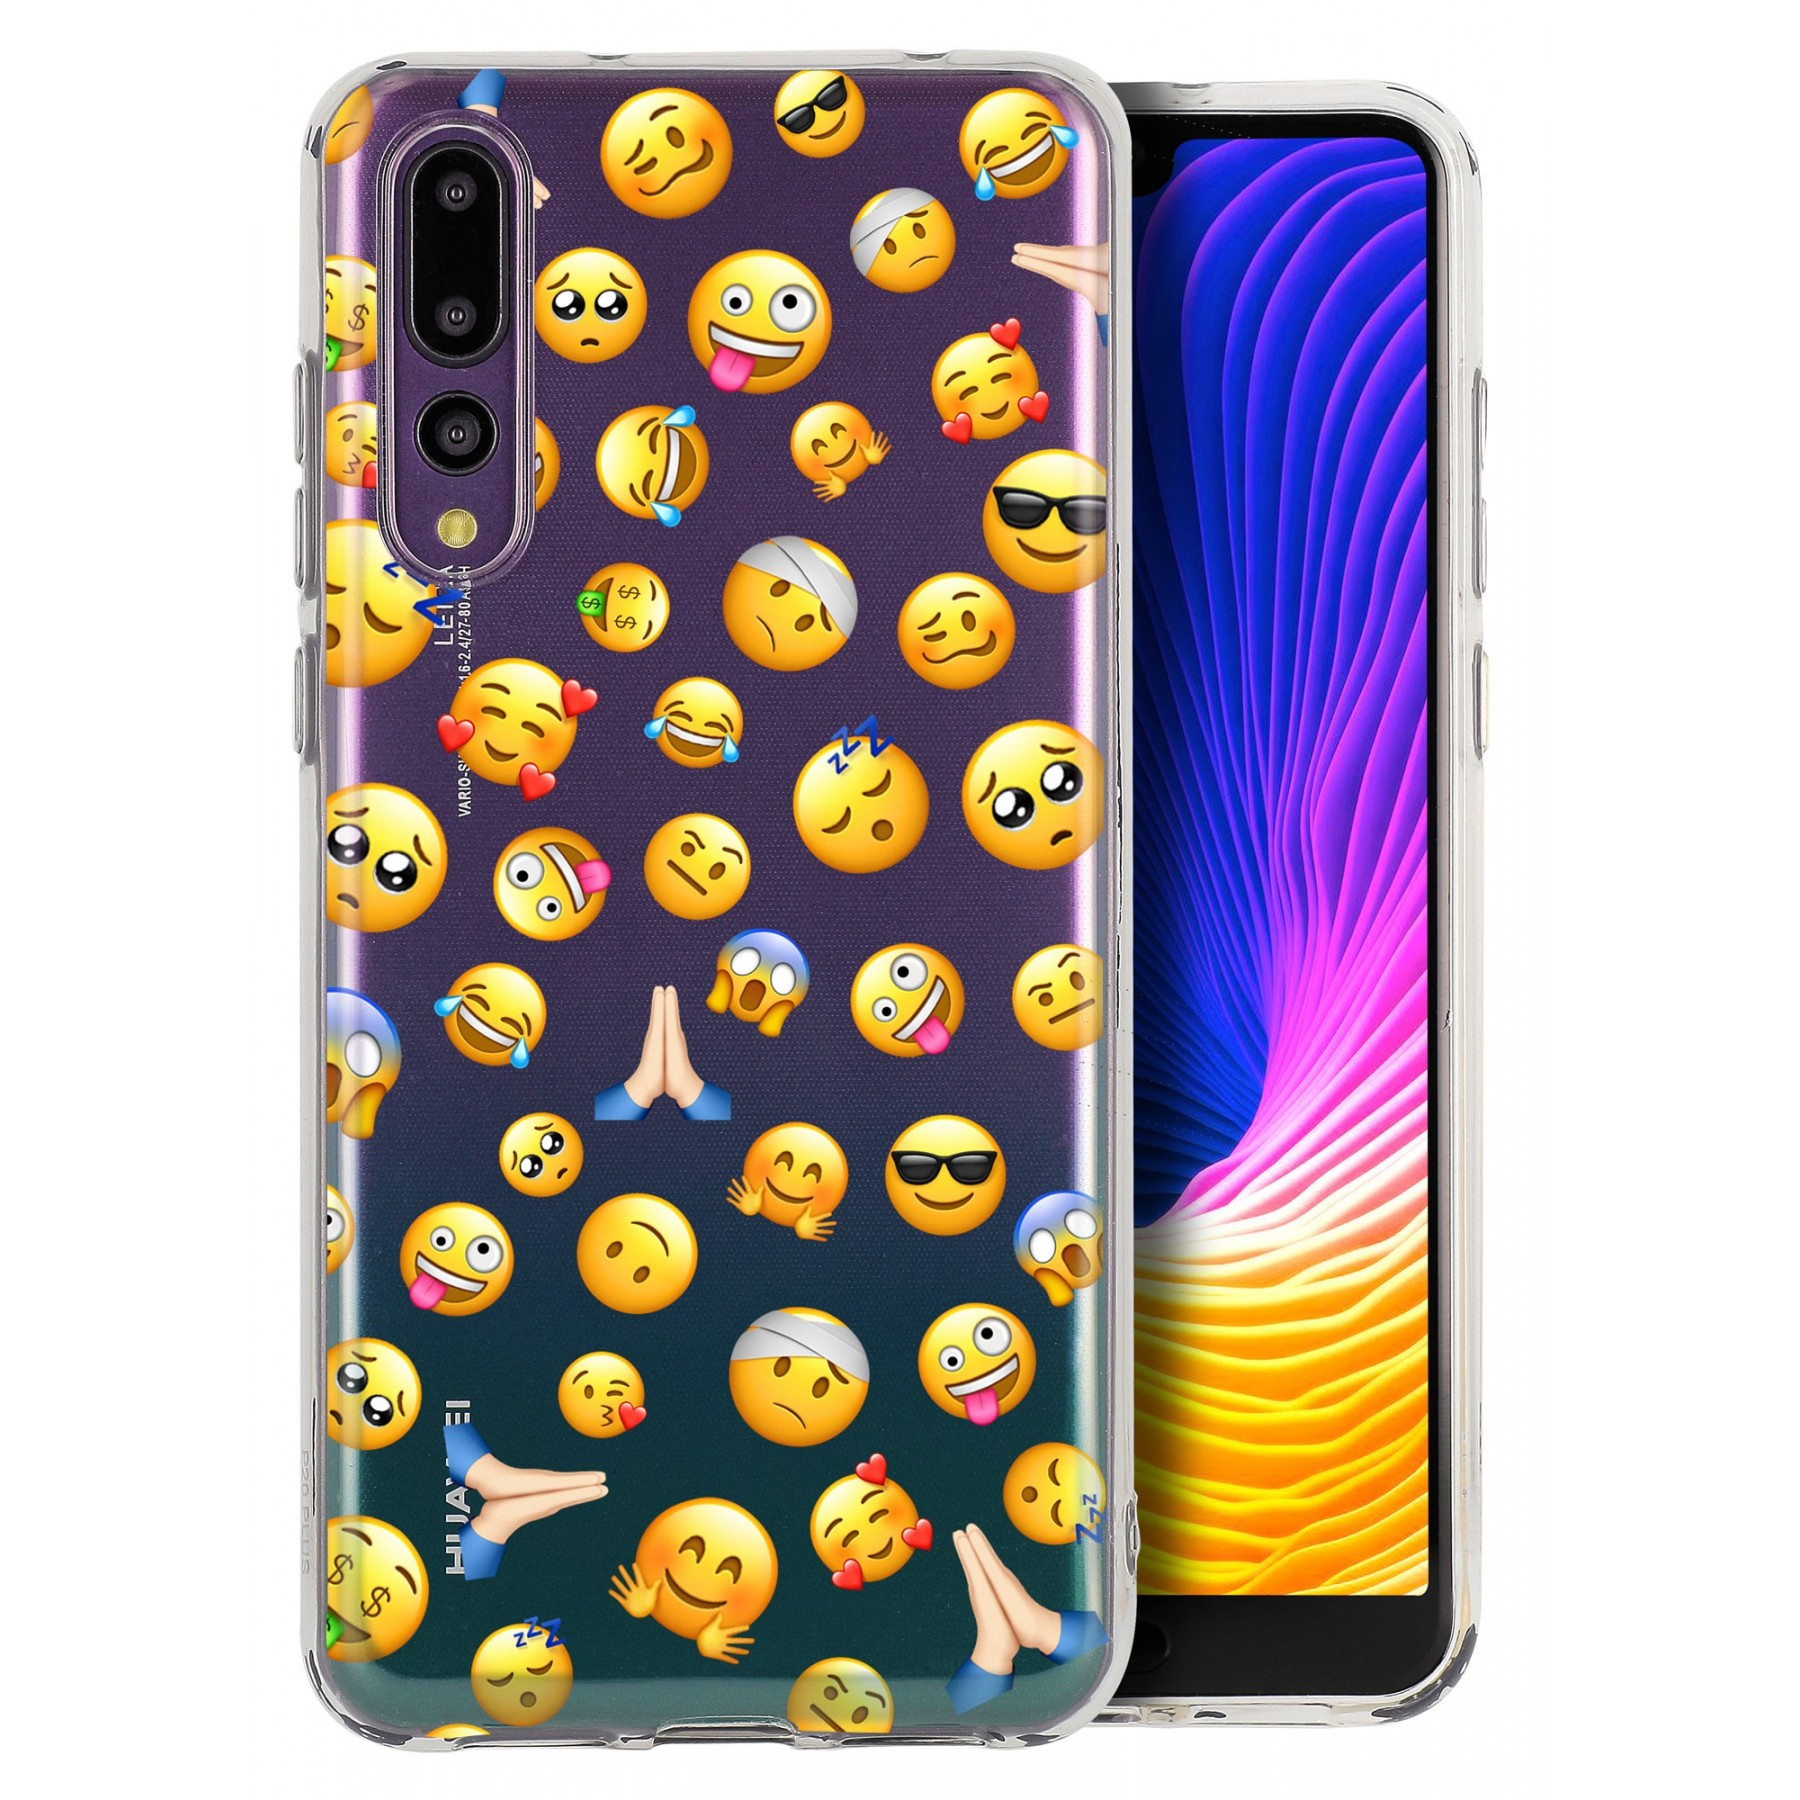 Coque smiley cool pour Huawei P20 pro